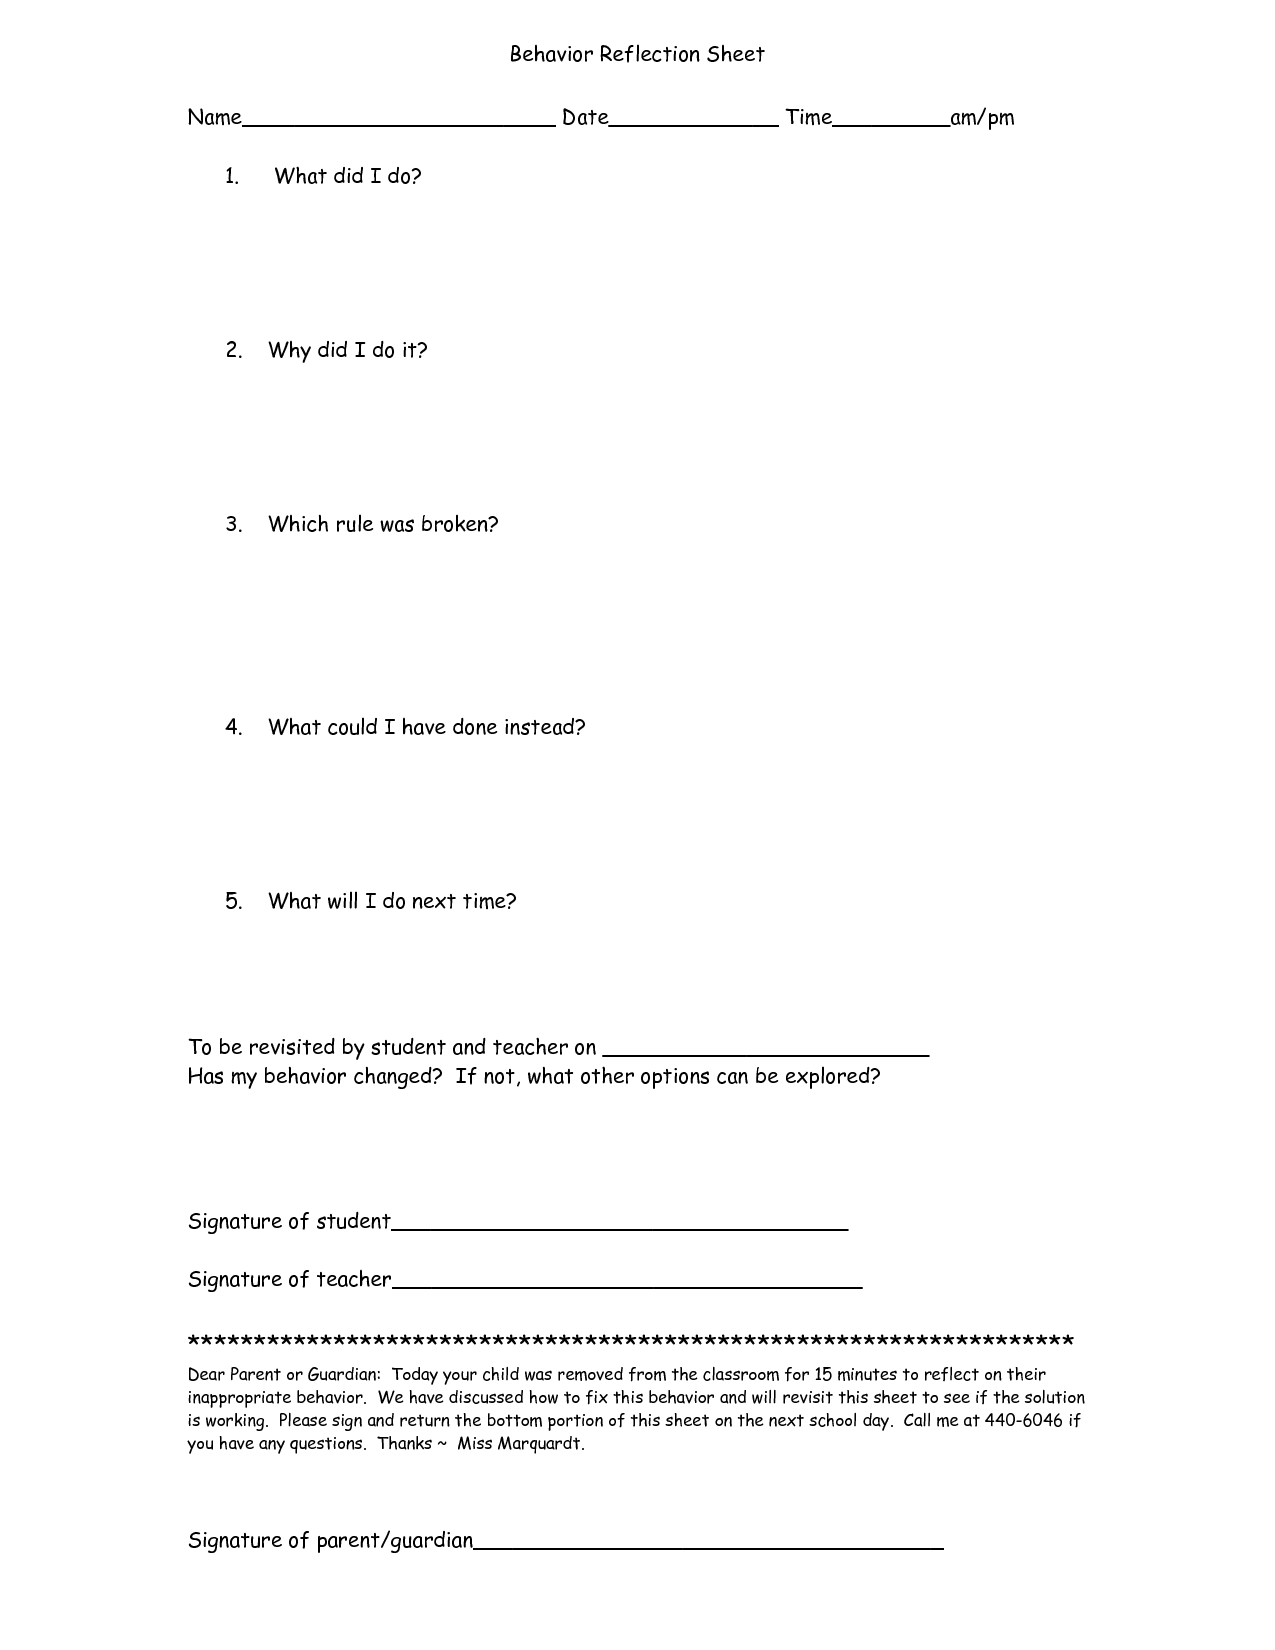 18 Best Images Of Student Behavior Reflection Worksheets